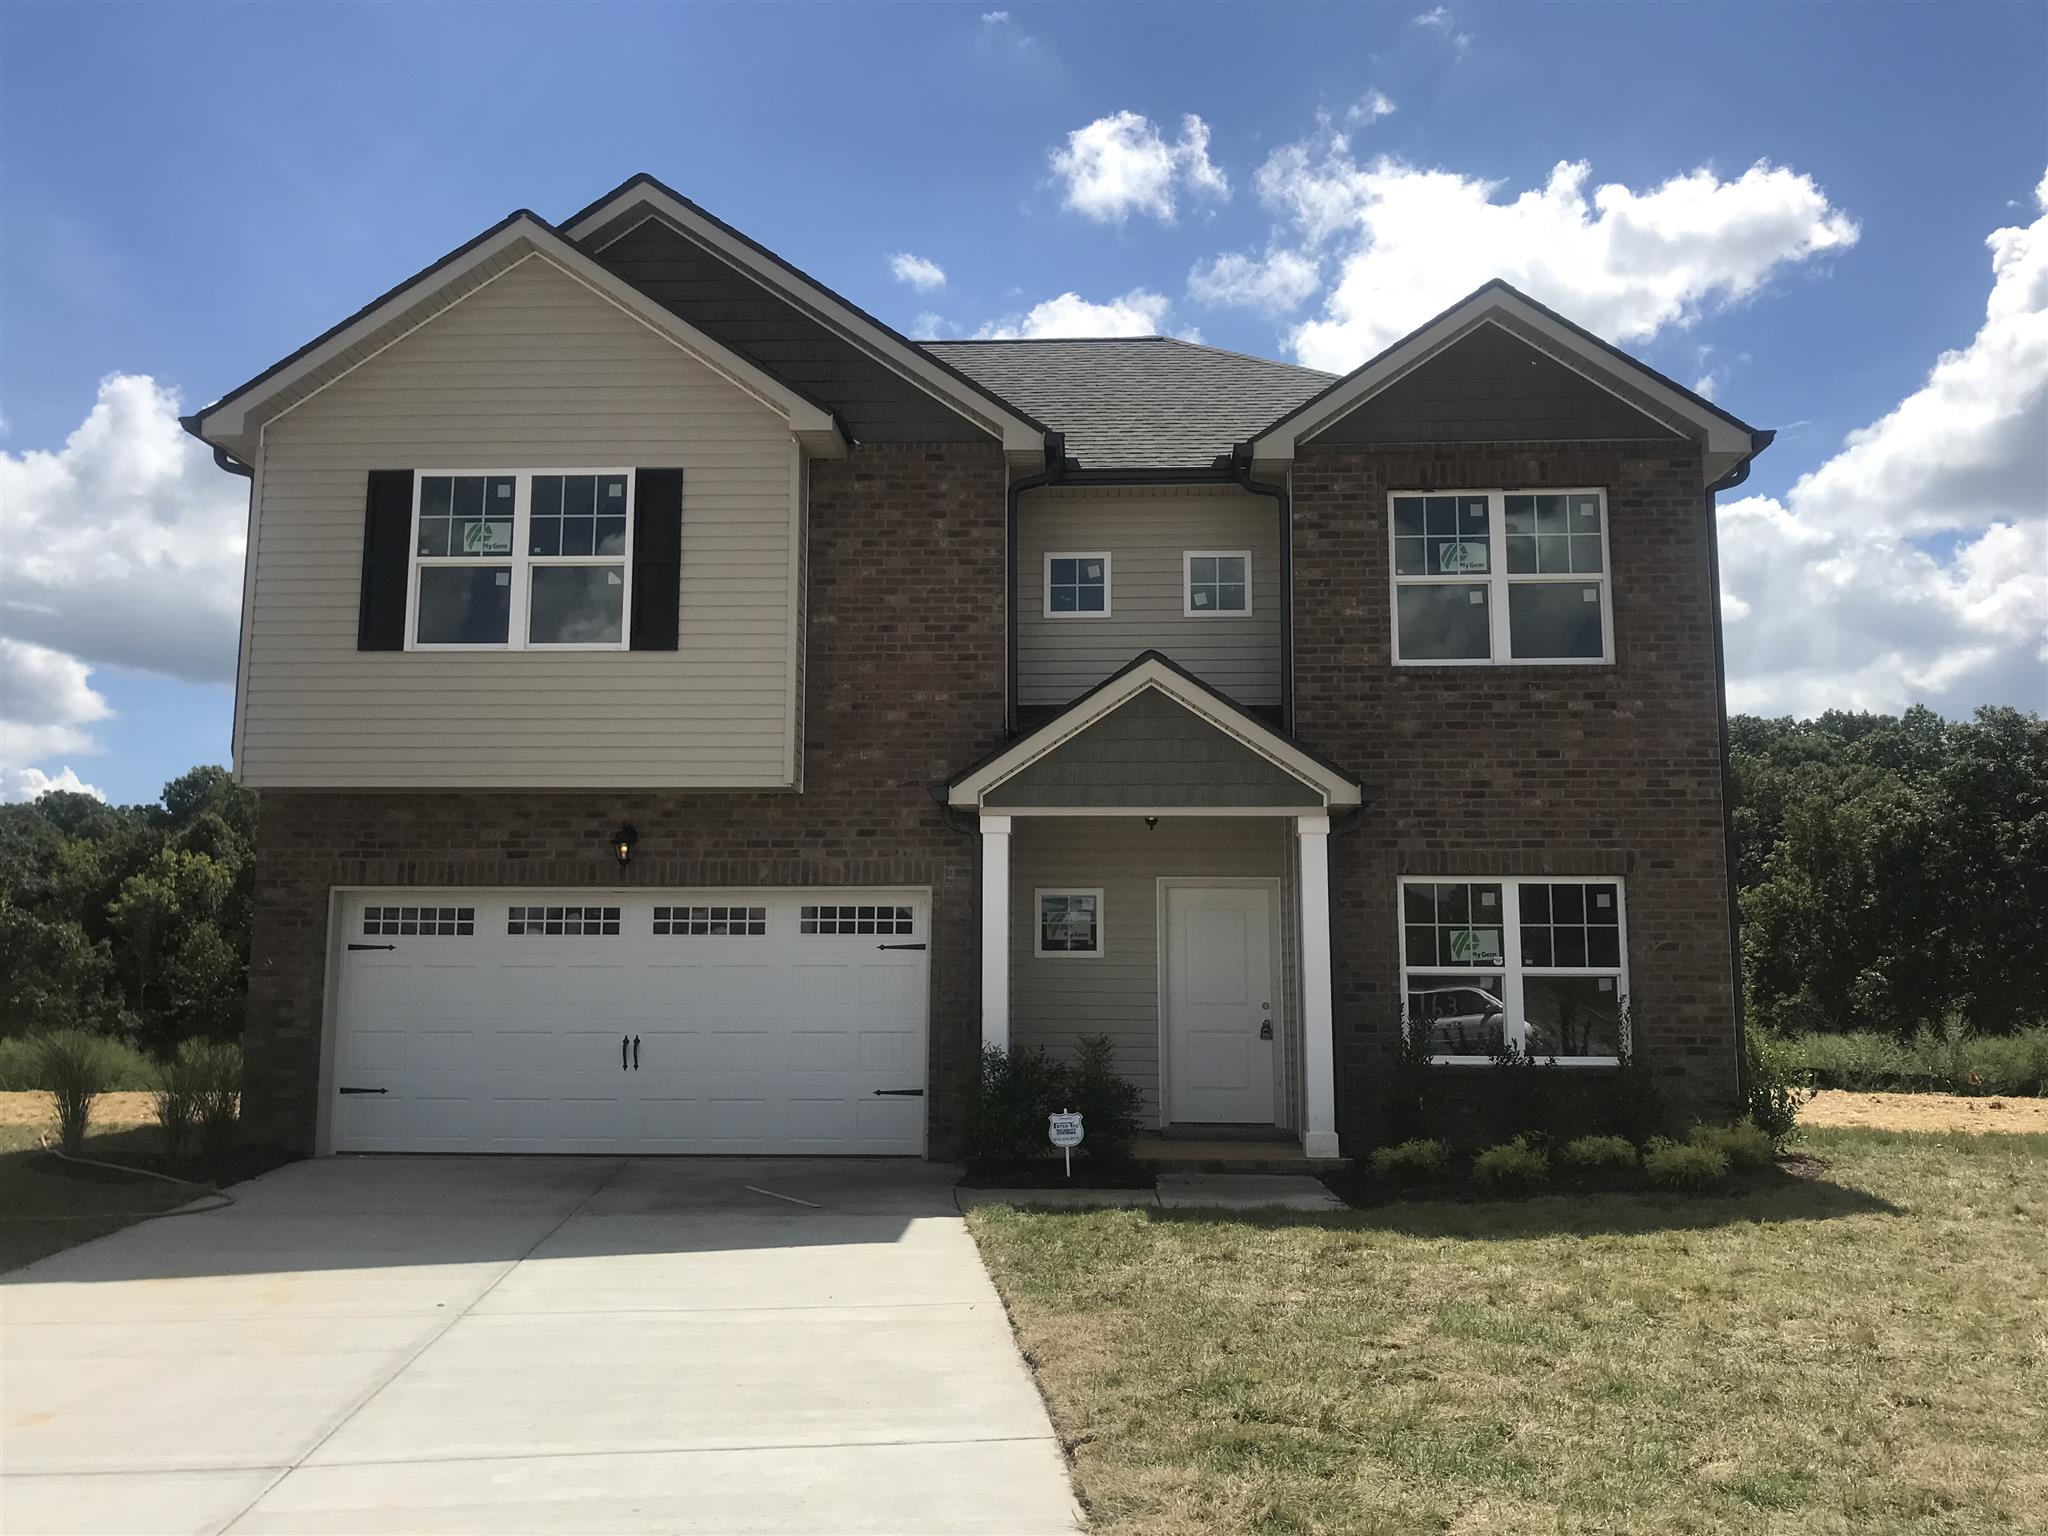 417 Barbaro Court Lot 163 Burns, TN 37029